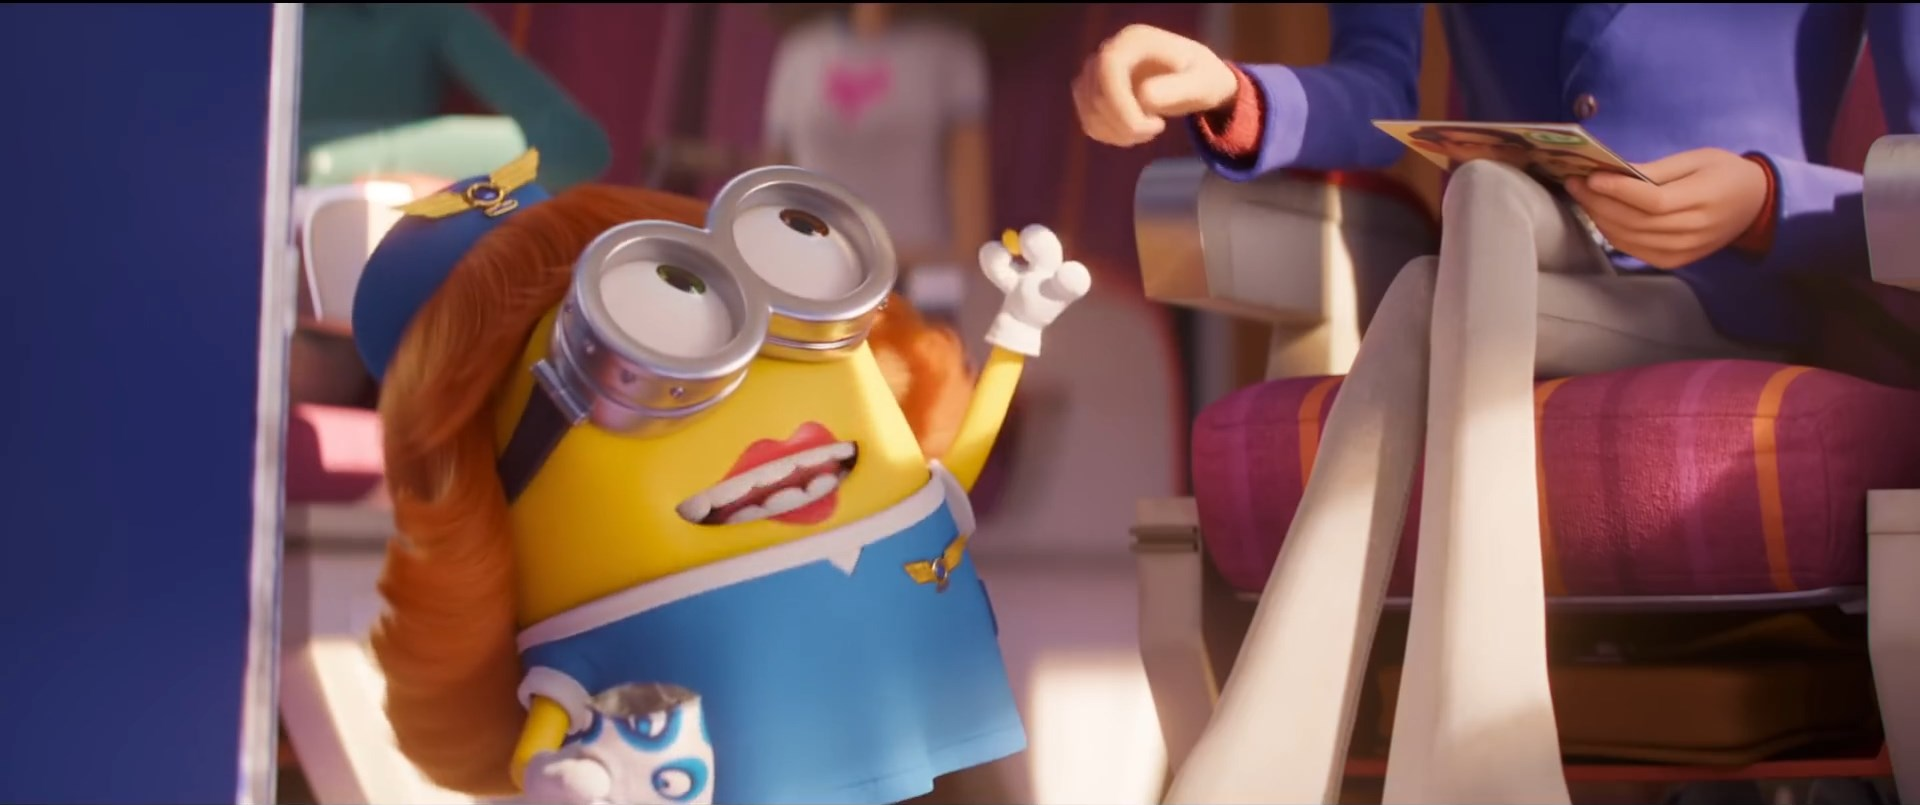 Minions: The Rise of Gru Superbowl Trailer